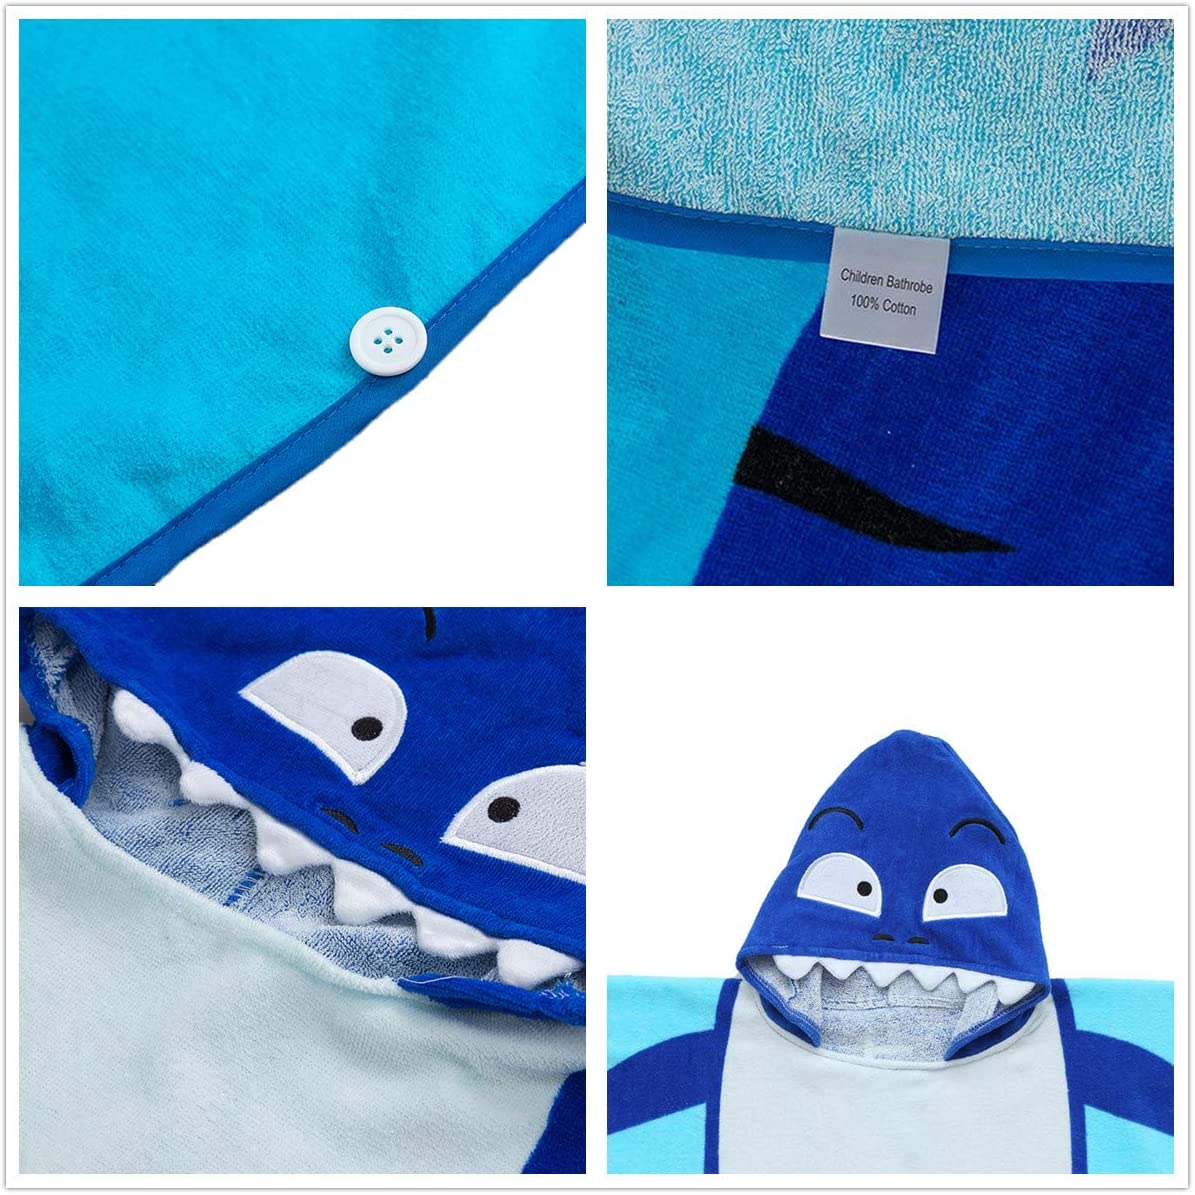 Cute Shark Hooded Beach Towel OldPAPA Hooded towels for kids Super Soft Cotton Bathrobe Poncho for Little Boy Girl Idea for Gift